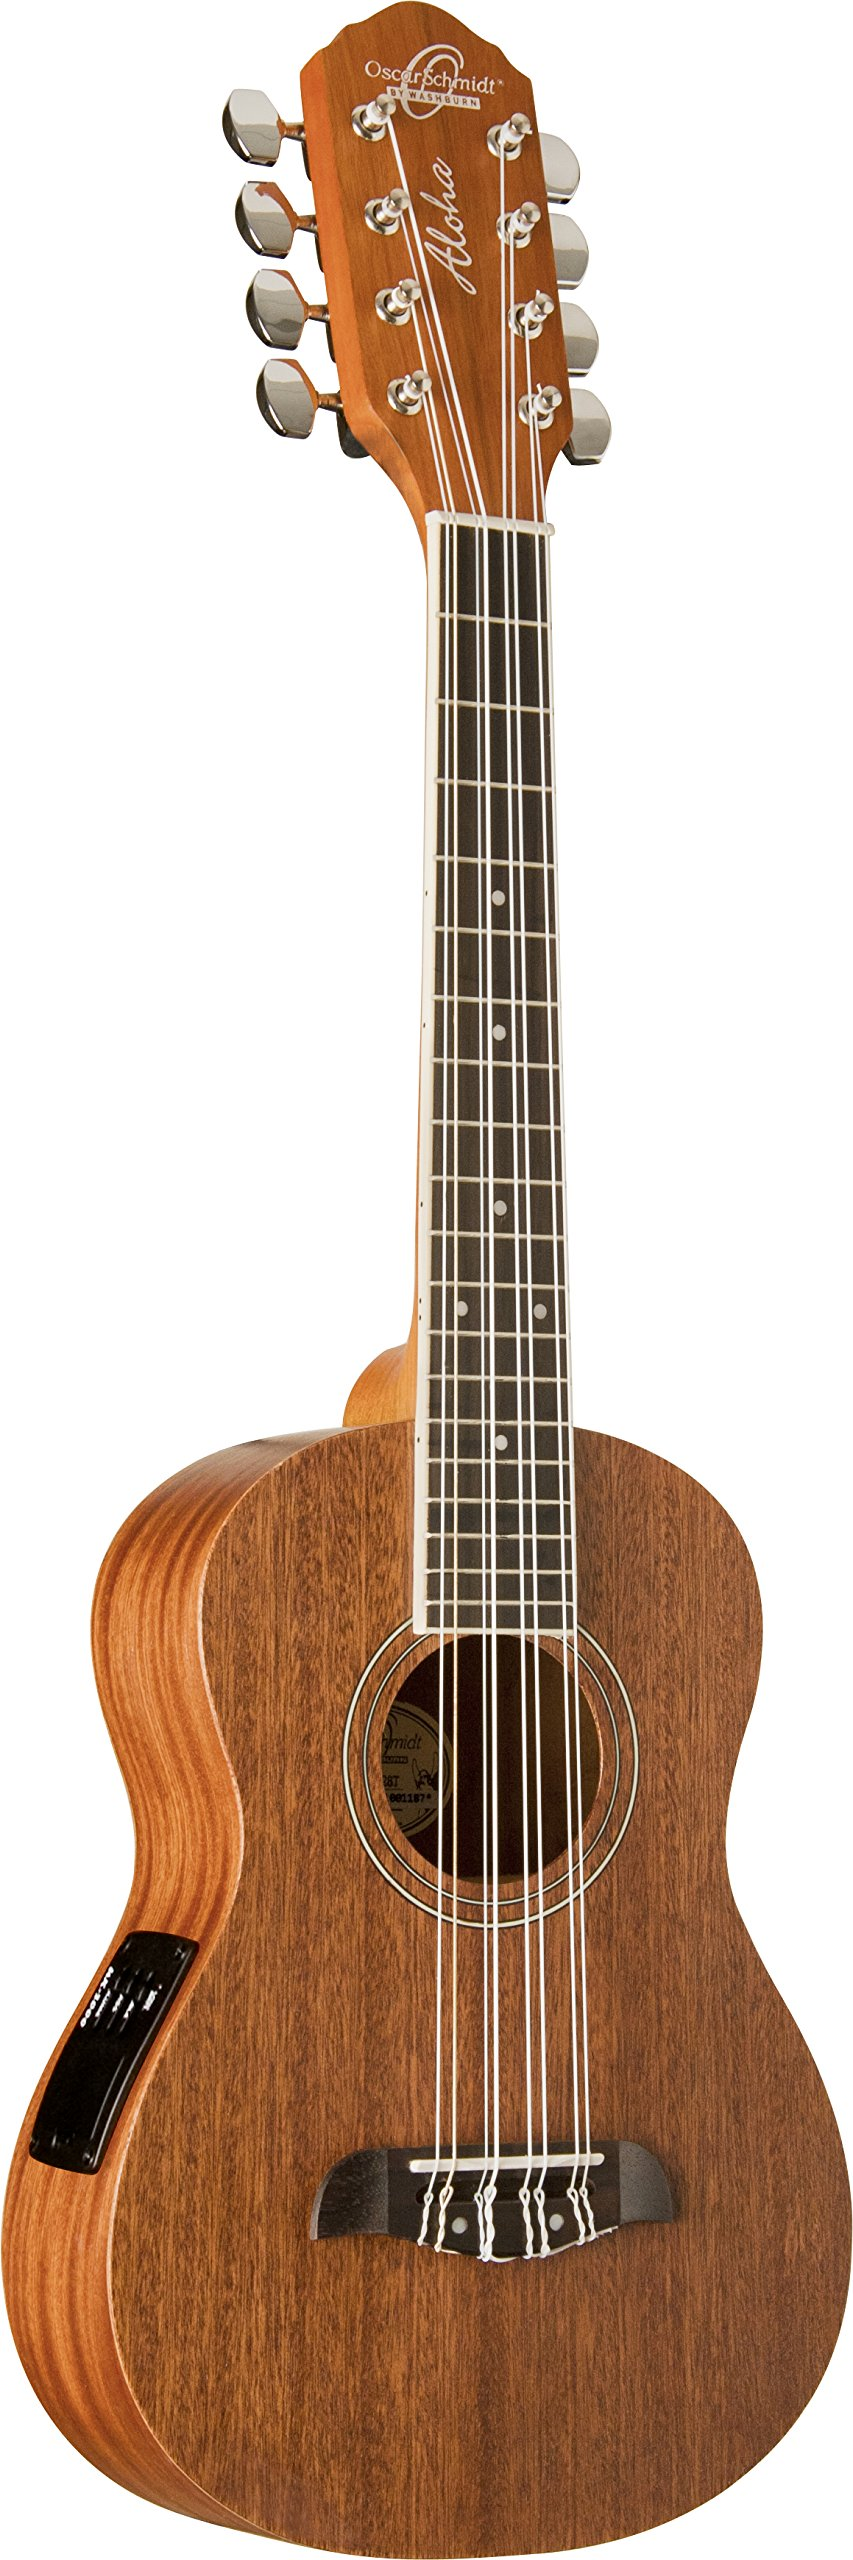 Oscar Schmidt OU28TE 8-String Tenor Ukulele, Satin Finish